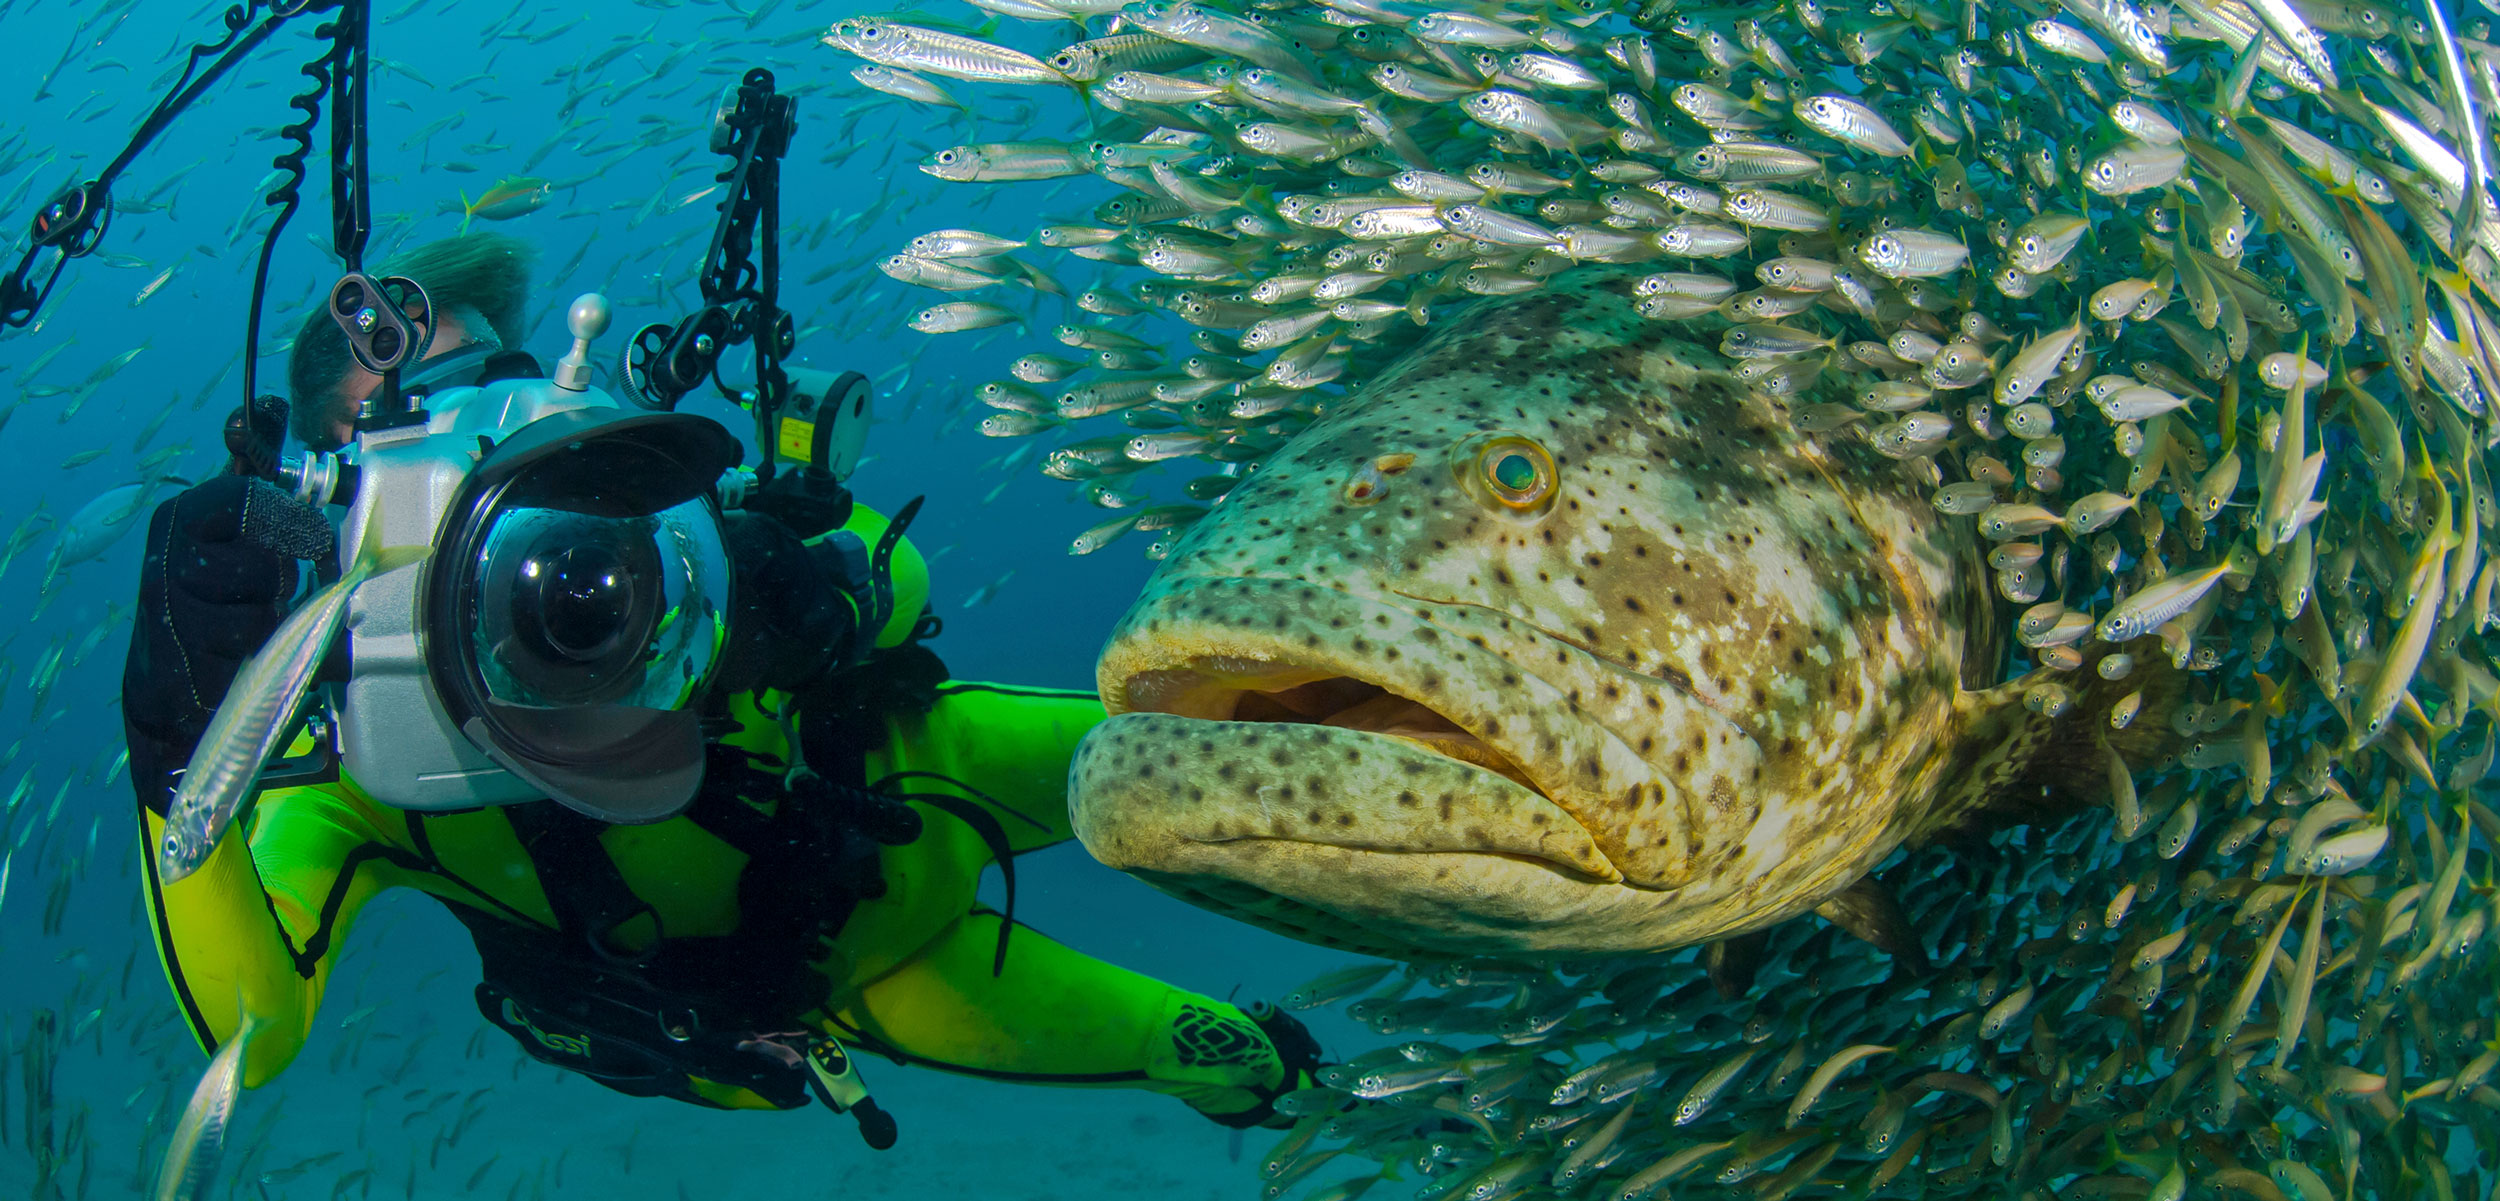 goliath grouper and diver